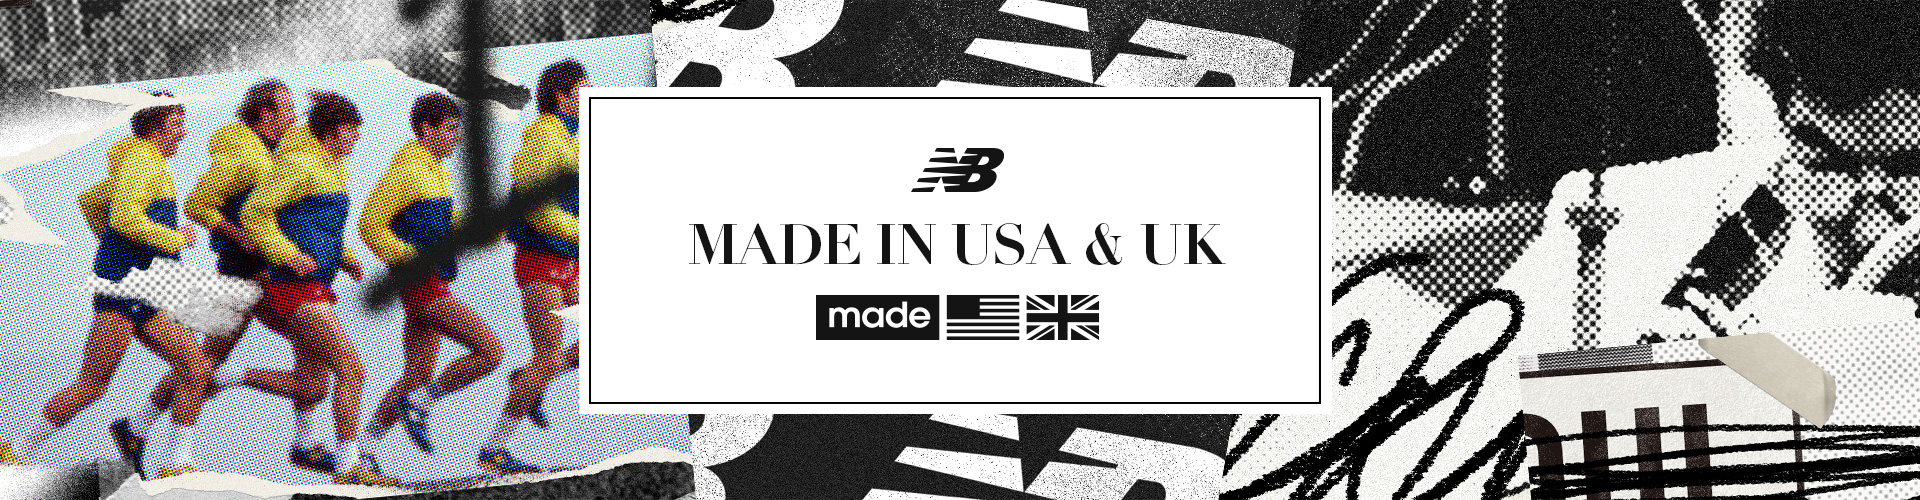 made in usa uk